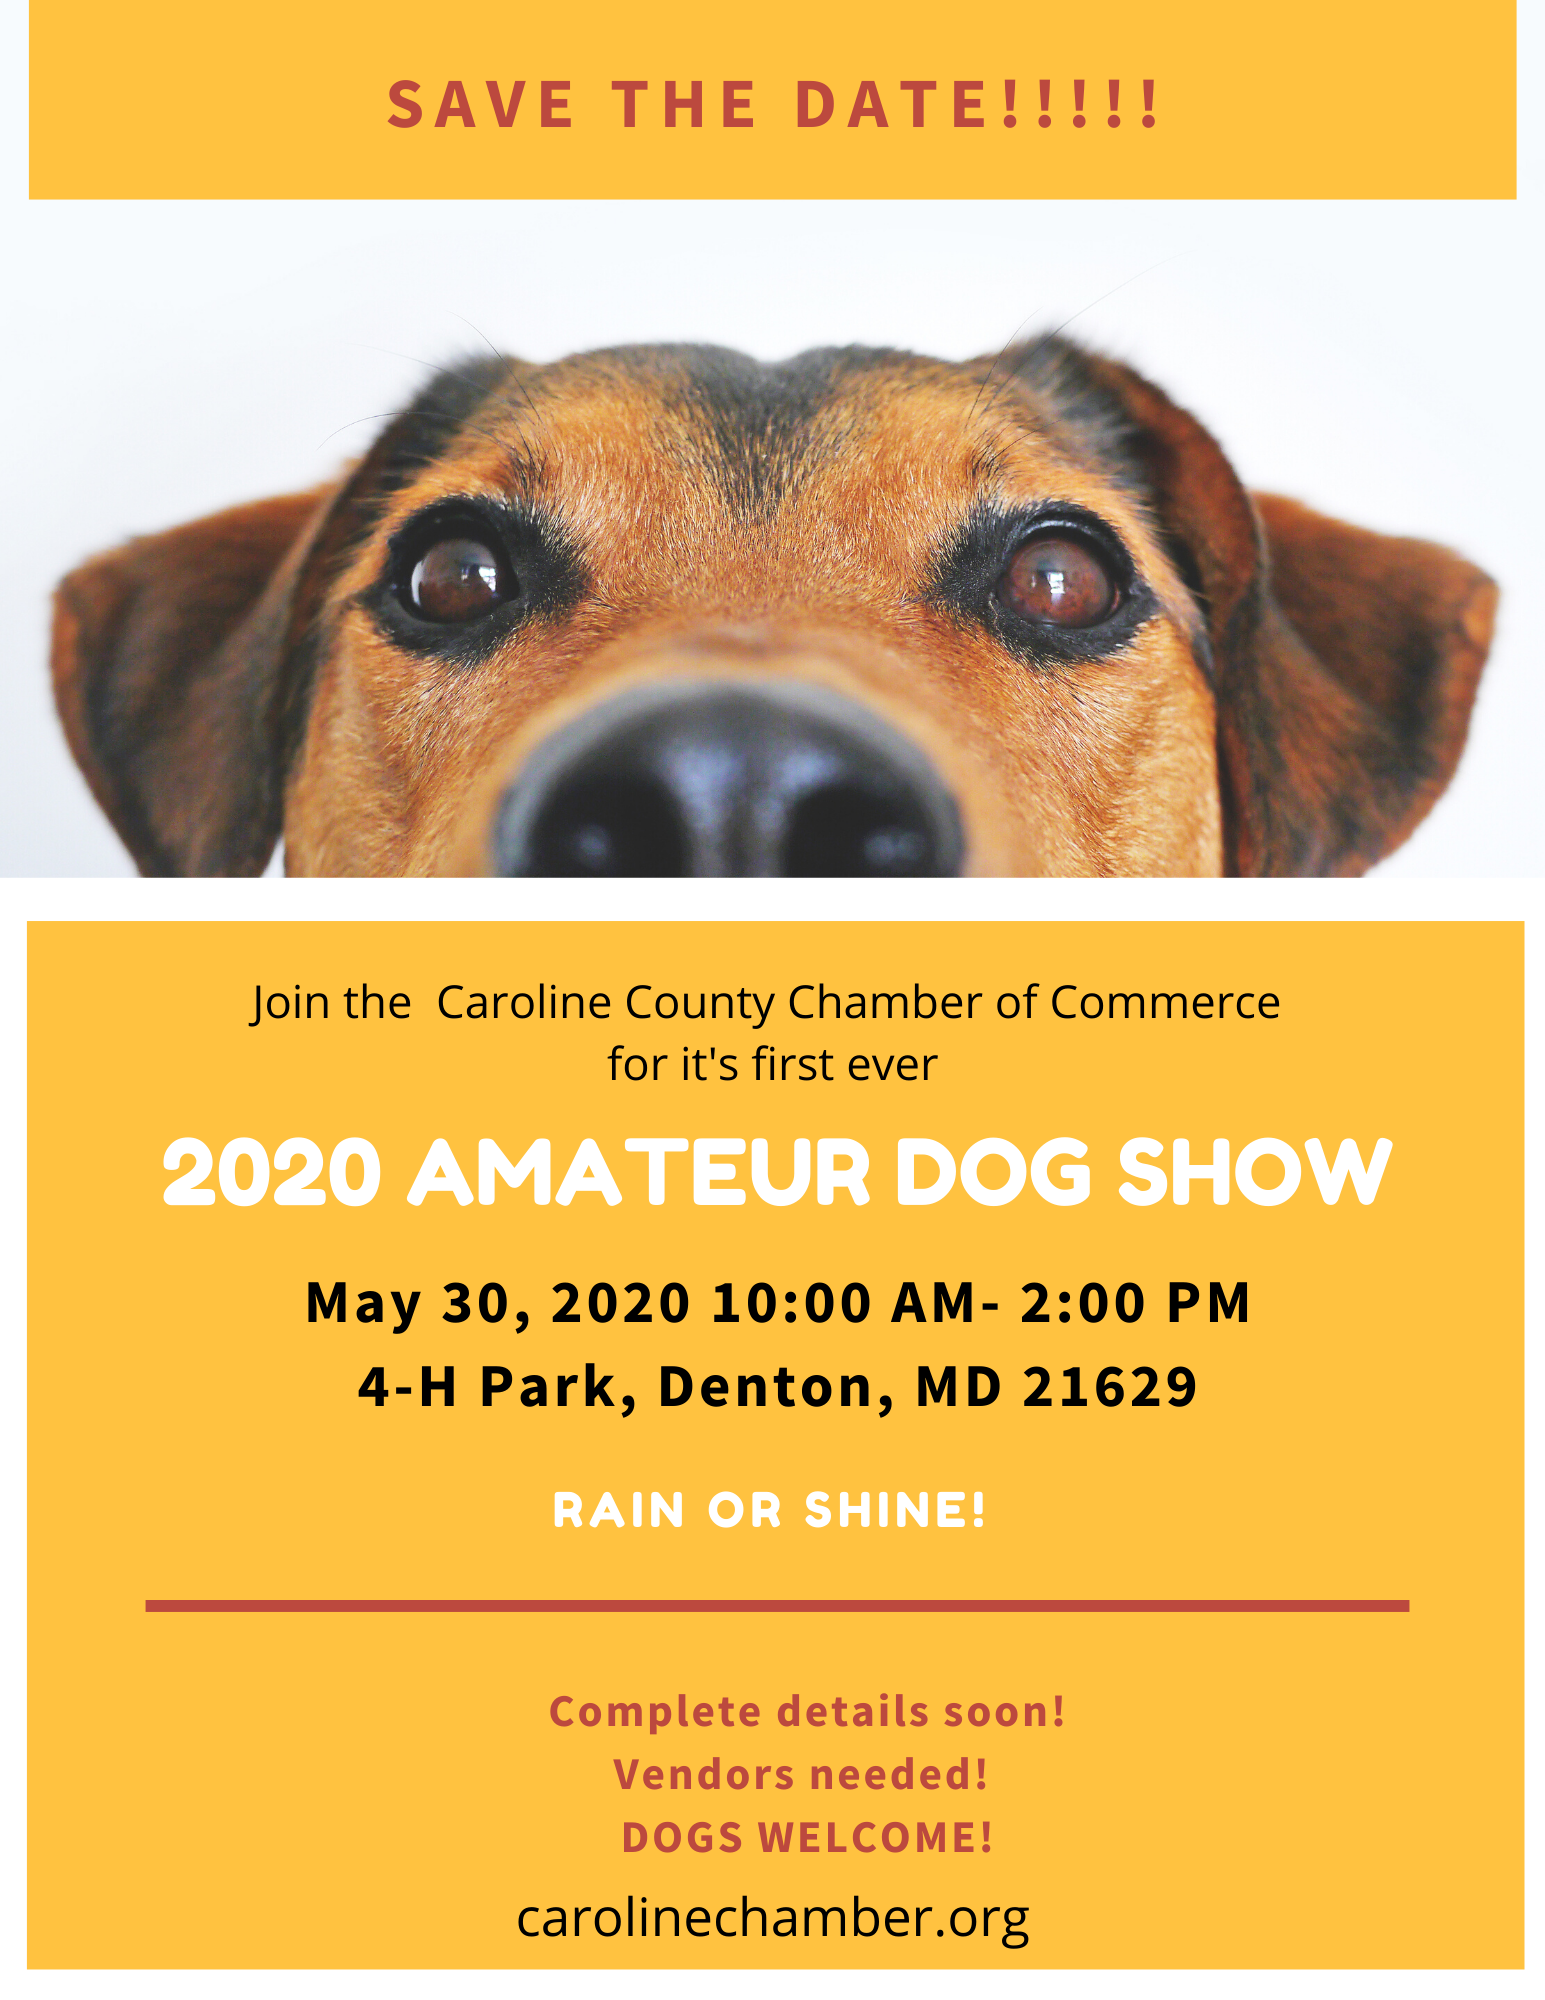 Caroline-County-Chamber-Dog-Show-May-2020.png